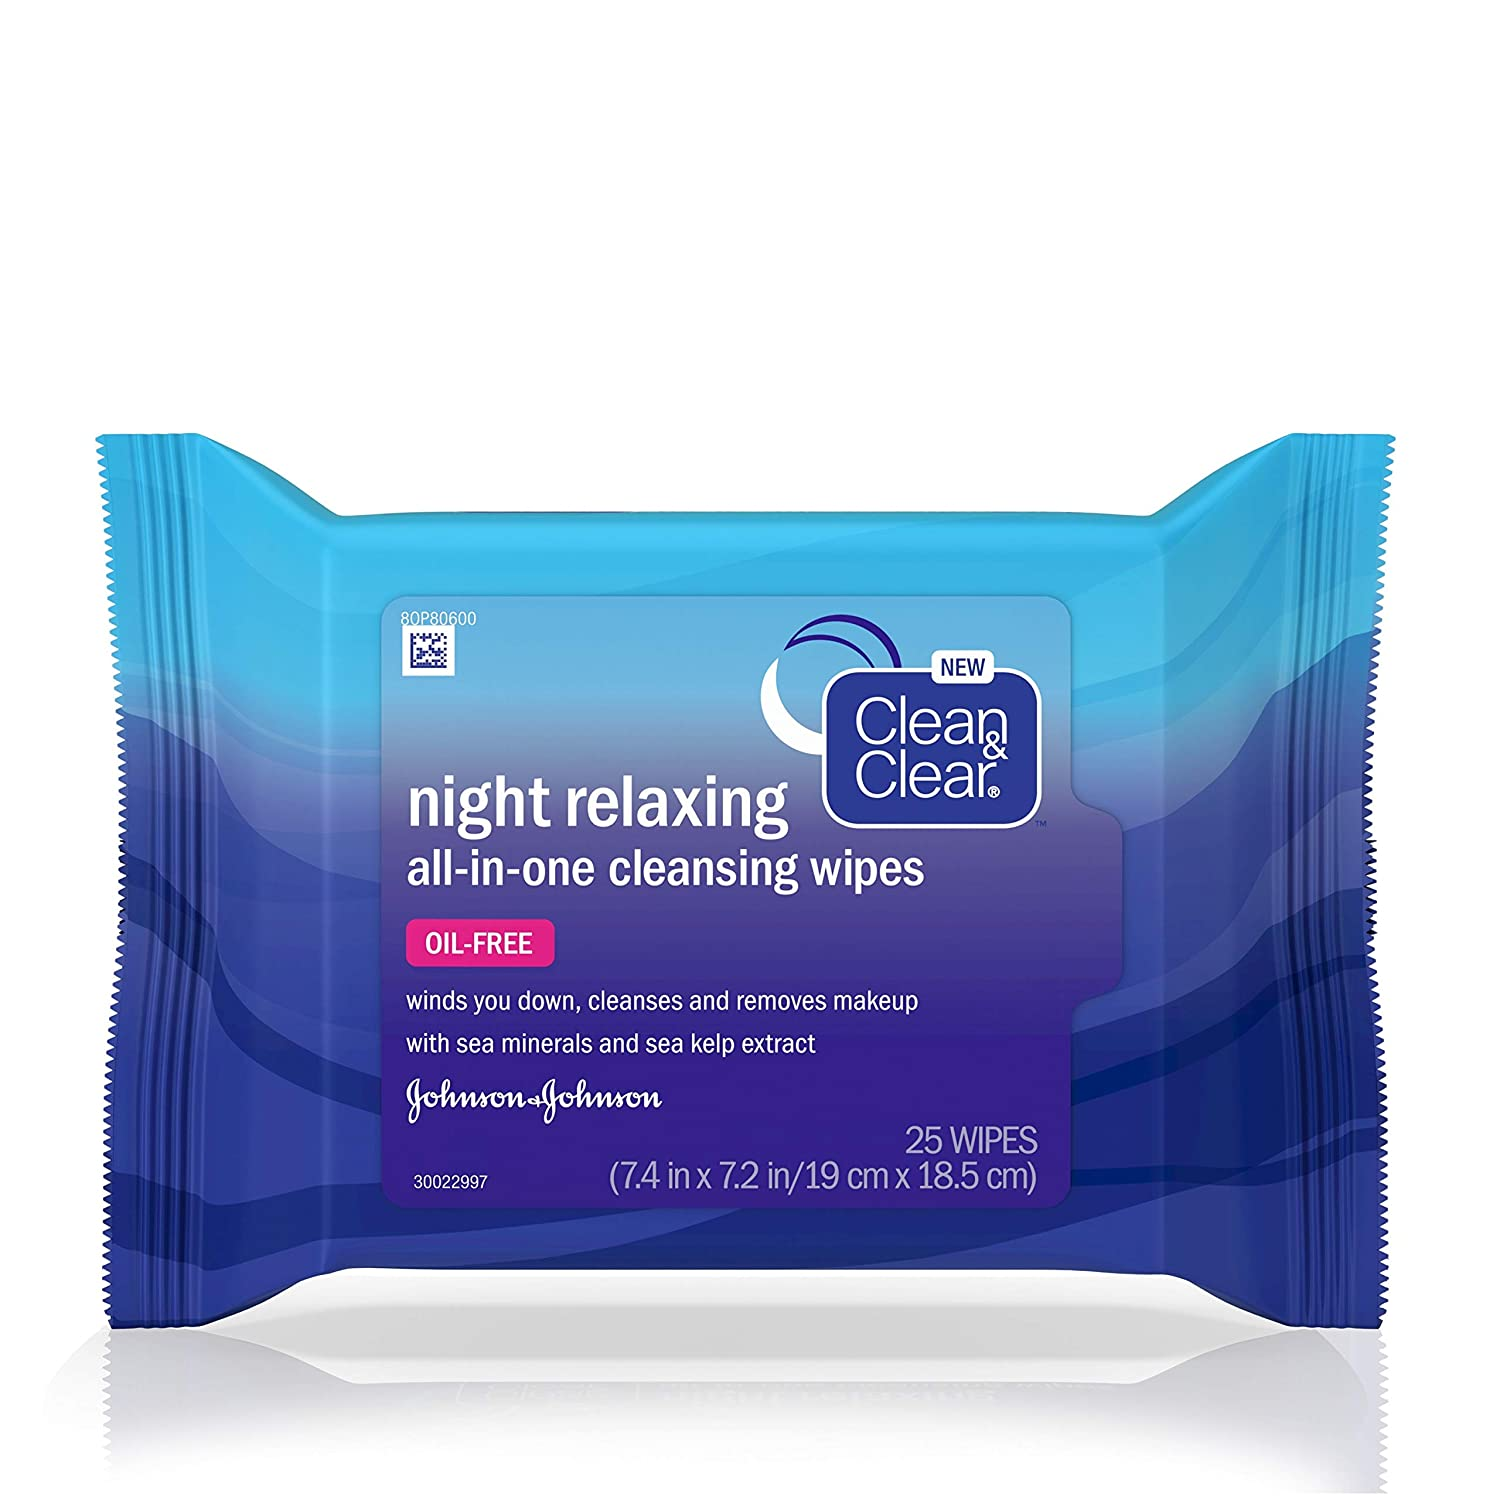 Clean & Clear Night Relaxing All-In-One Facial Cleansing & Makeup Remover Wipes with Deep Sea Minerals & Sea Kelp Extract, Oil-free, Non-Comedogenic & Ophthalmologist-Tested, 25 ct (Pack of 6)